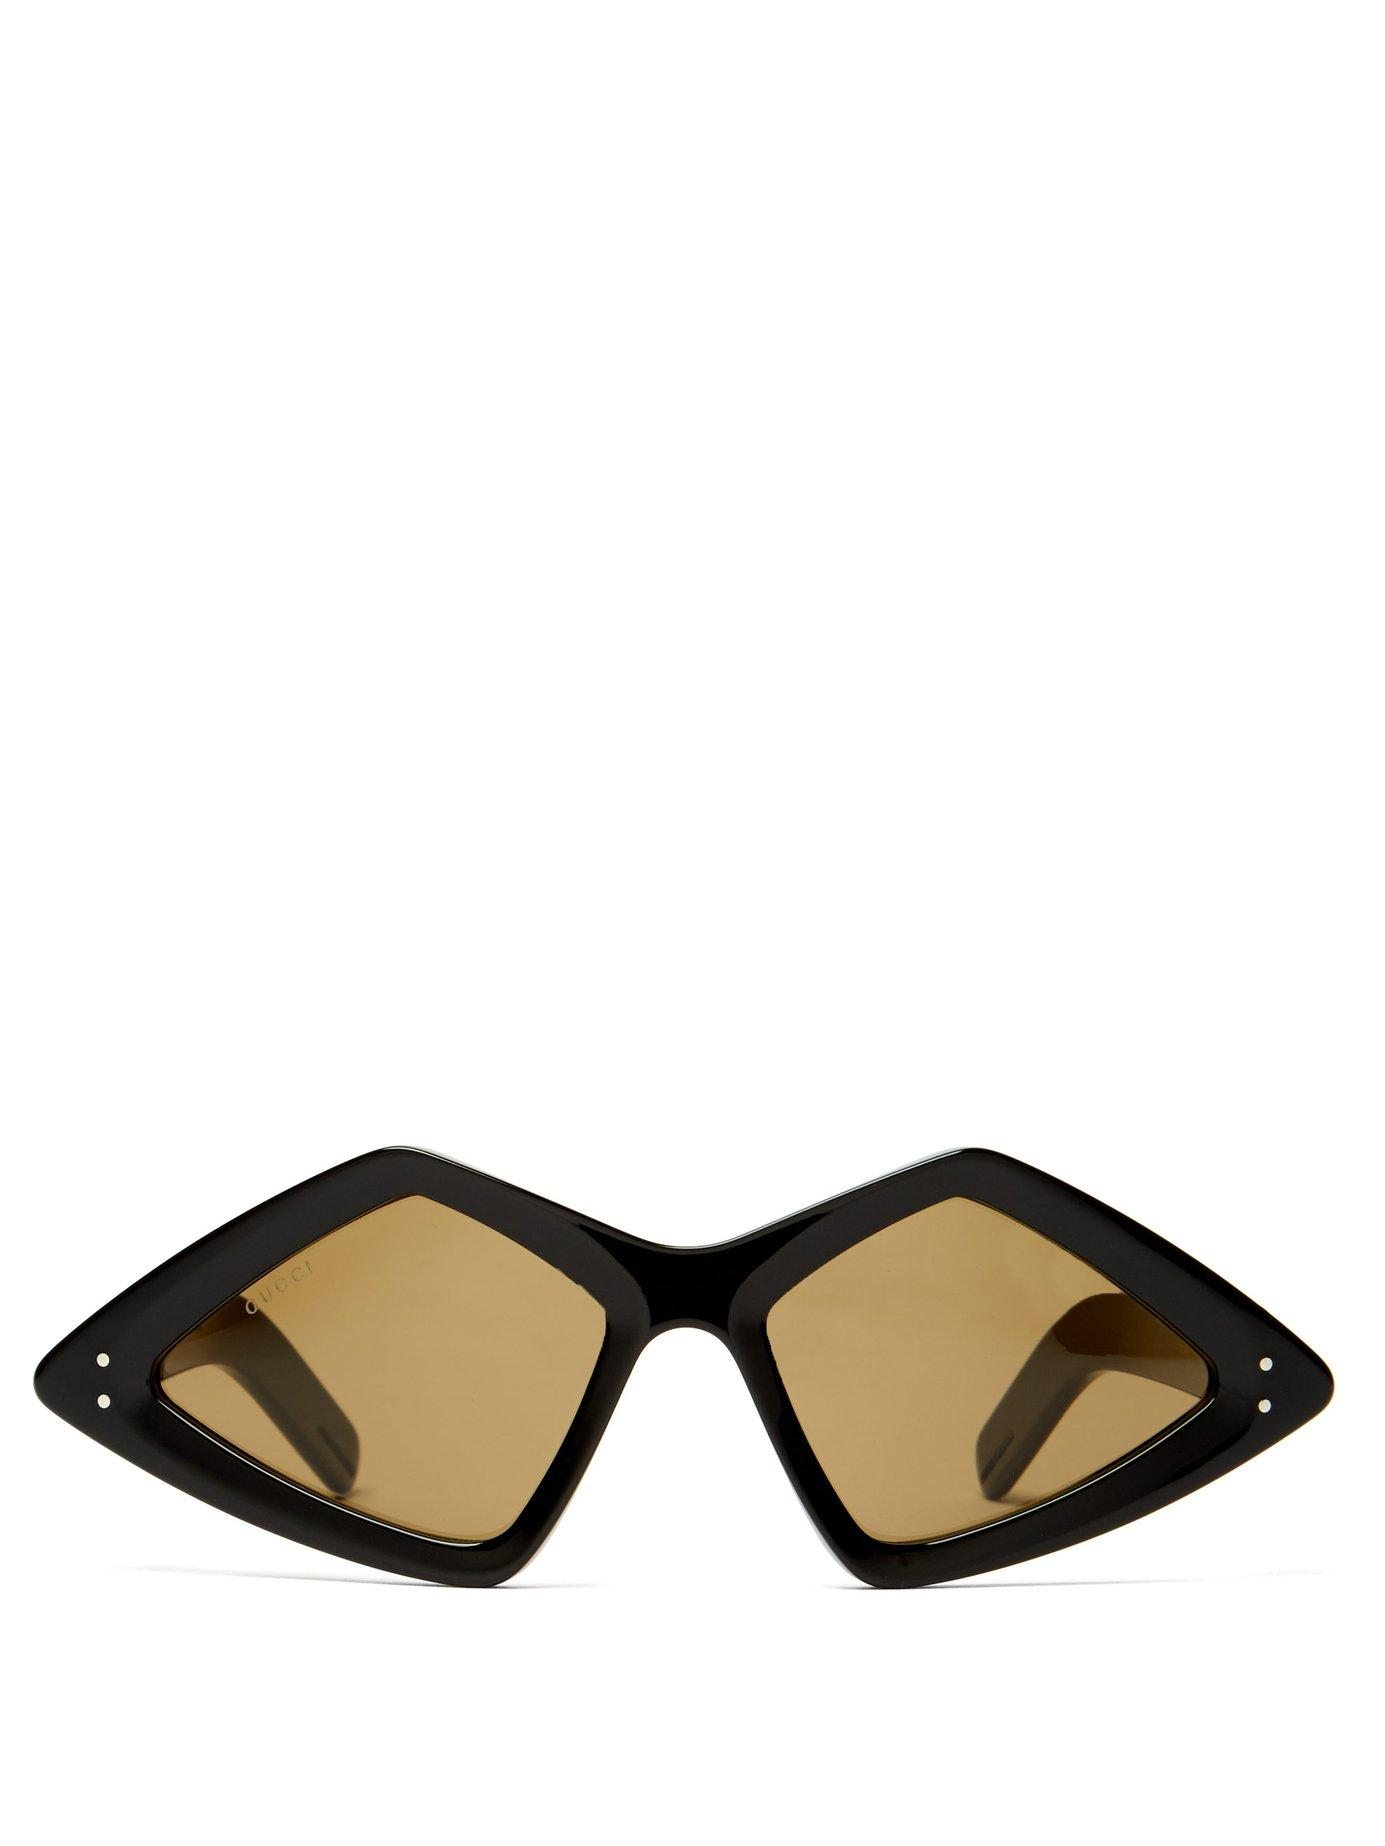 eb916b225621 ... Diamond Frame Acetate Sunglasses - Lyst. View fullscreen